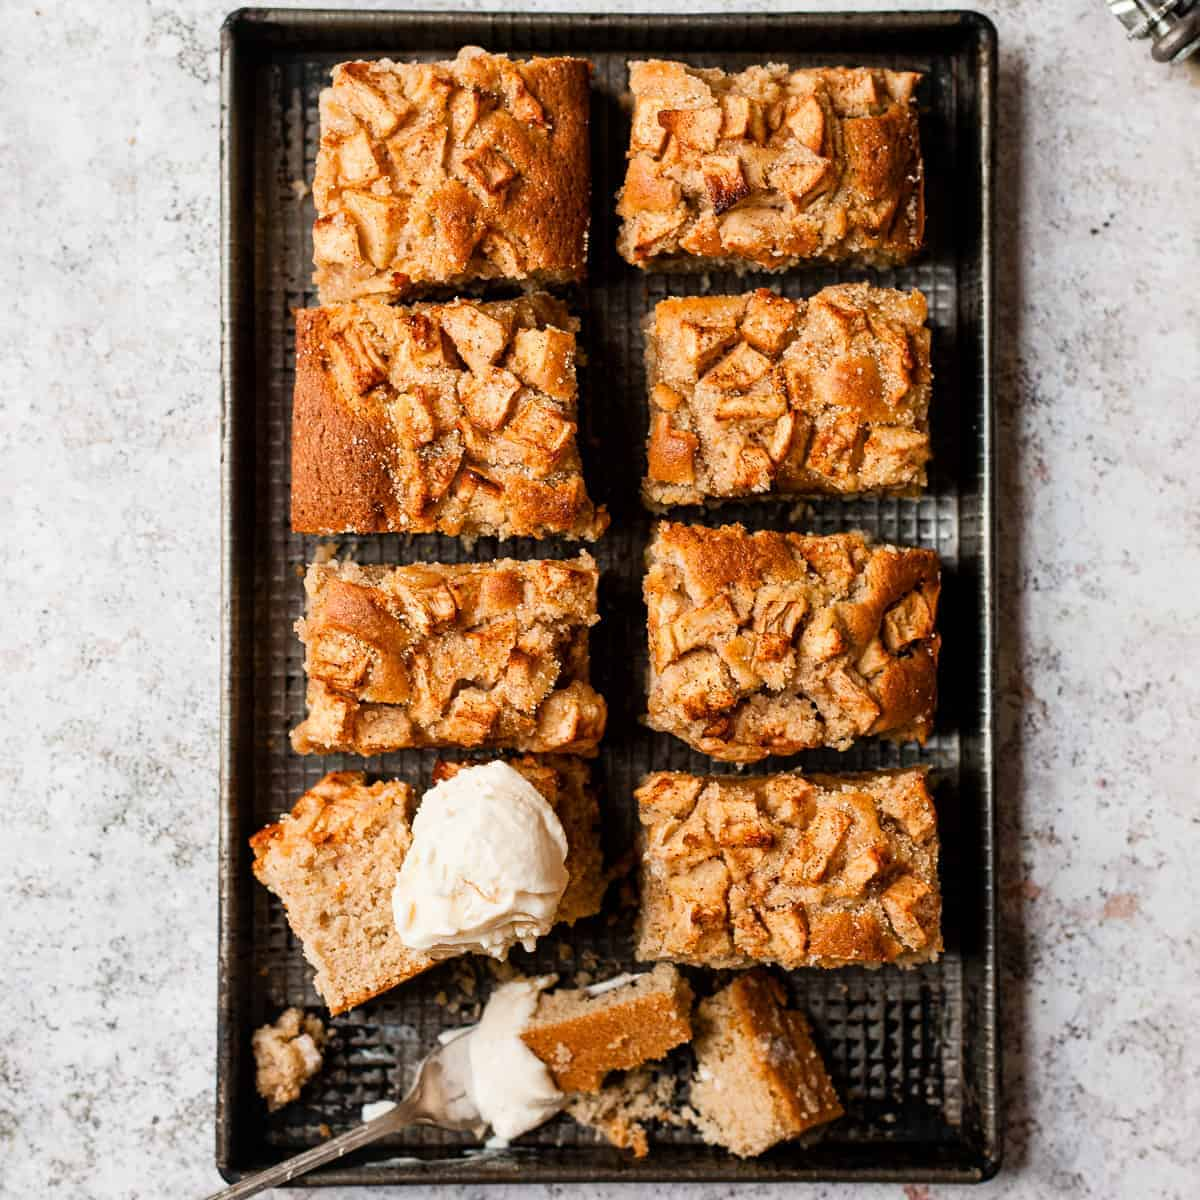 Apple cake in slices on a baking tray with ice cream.